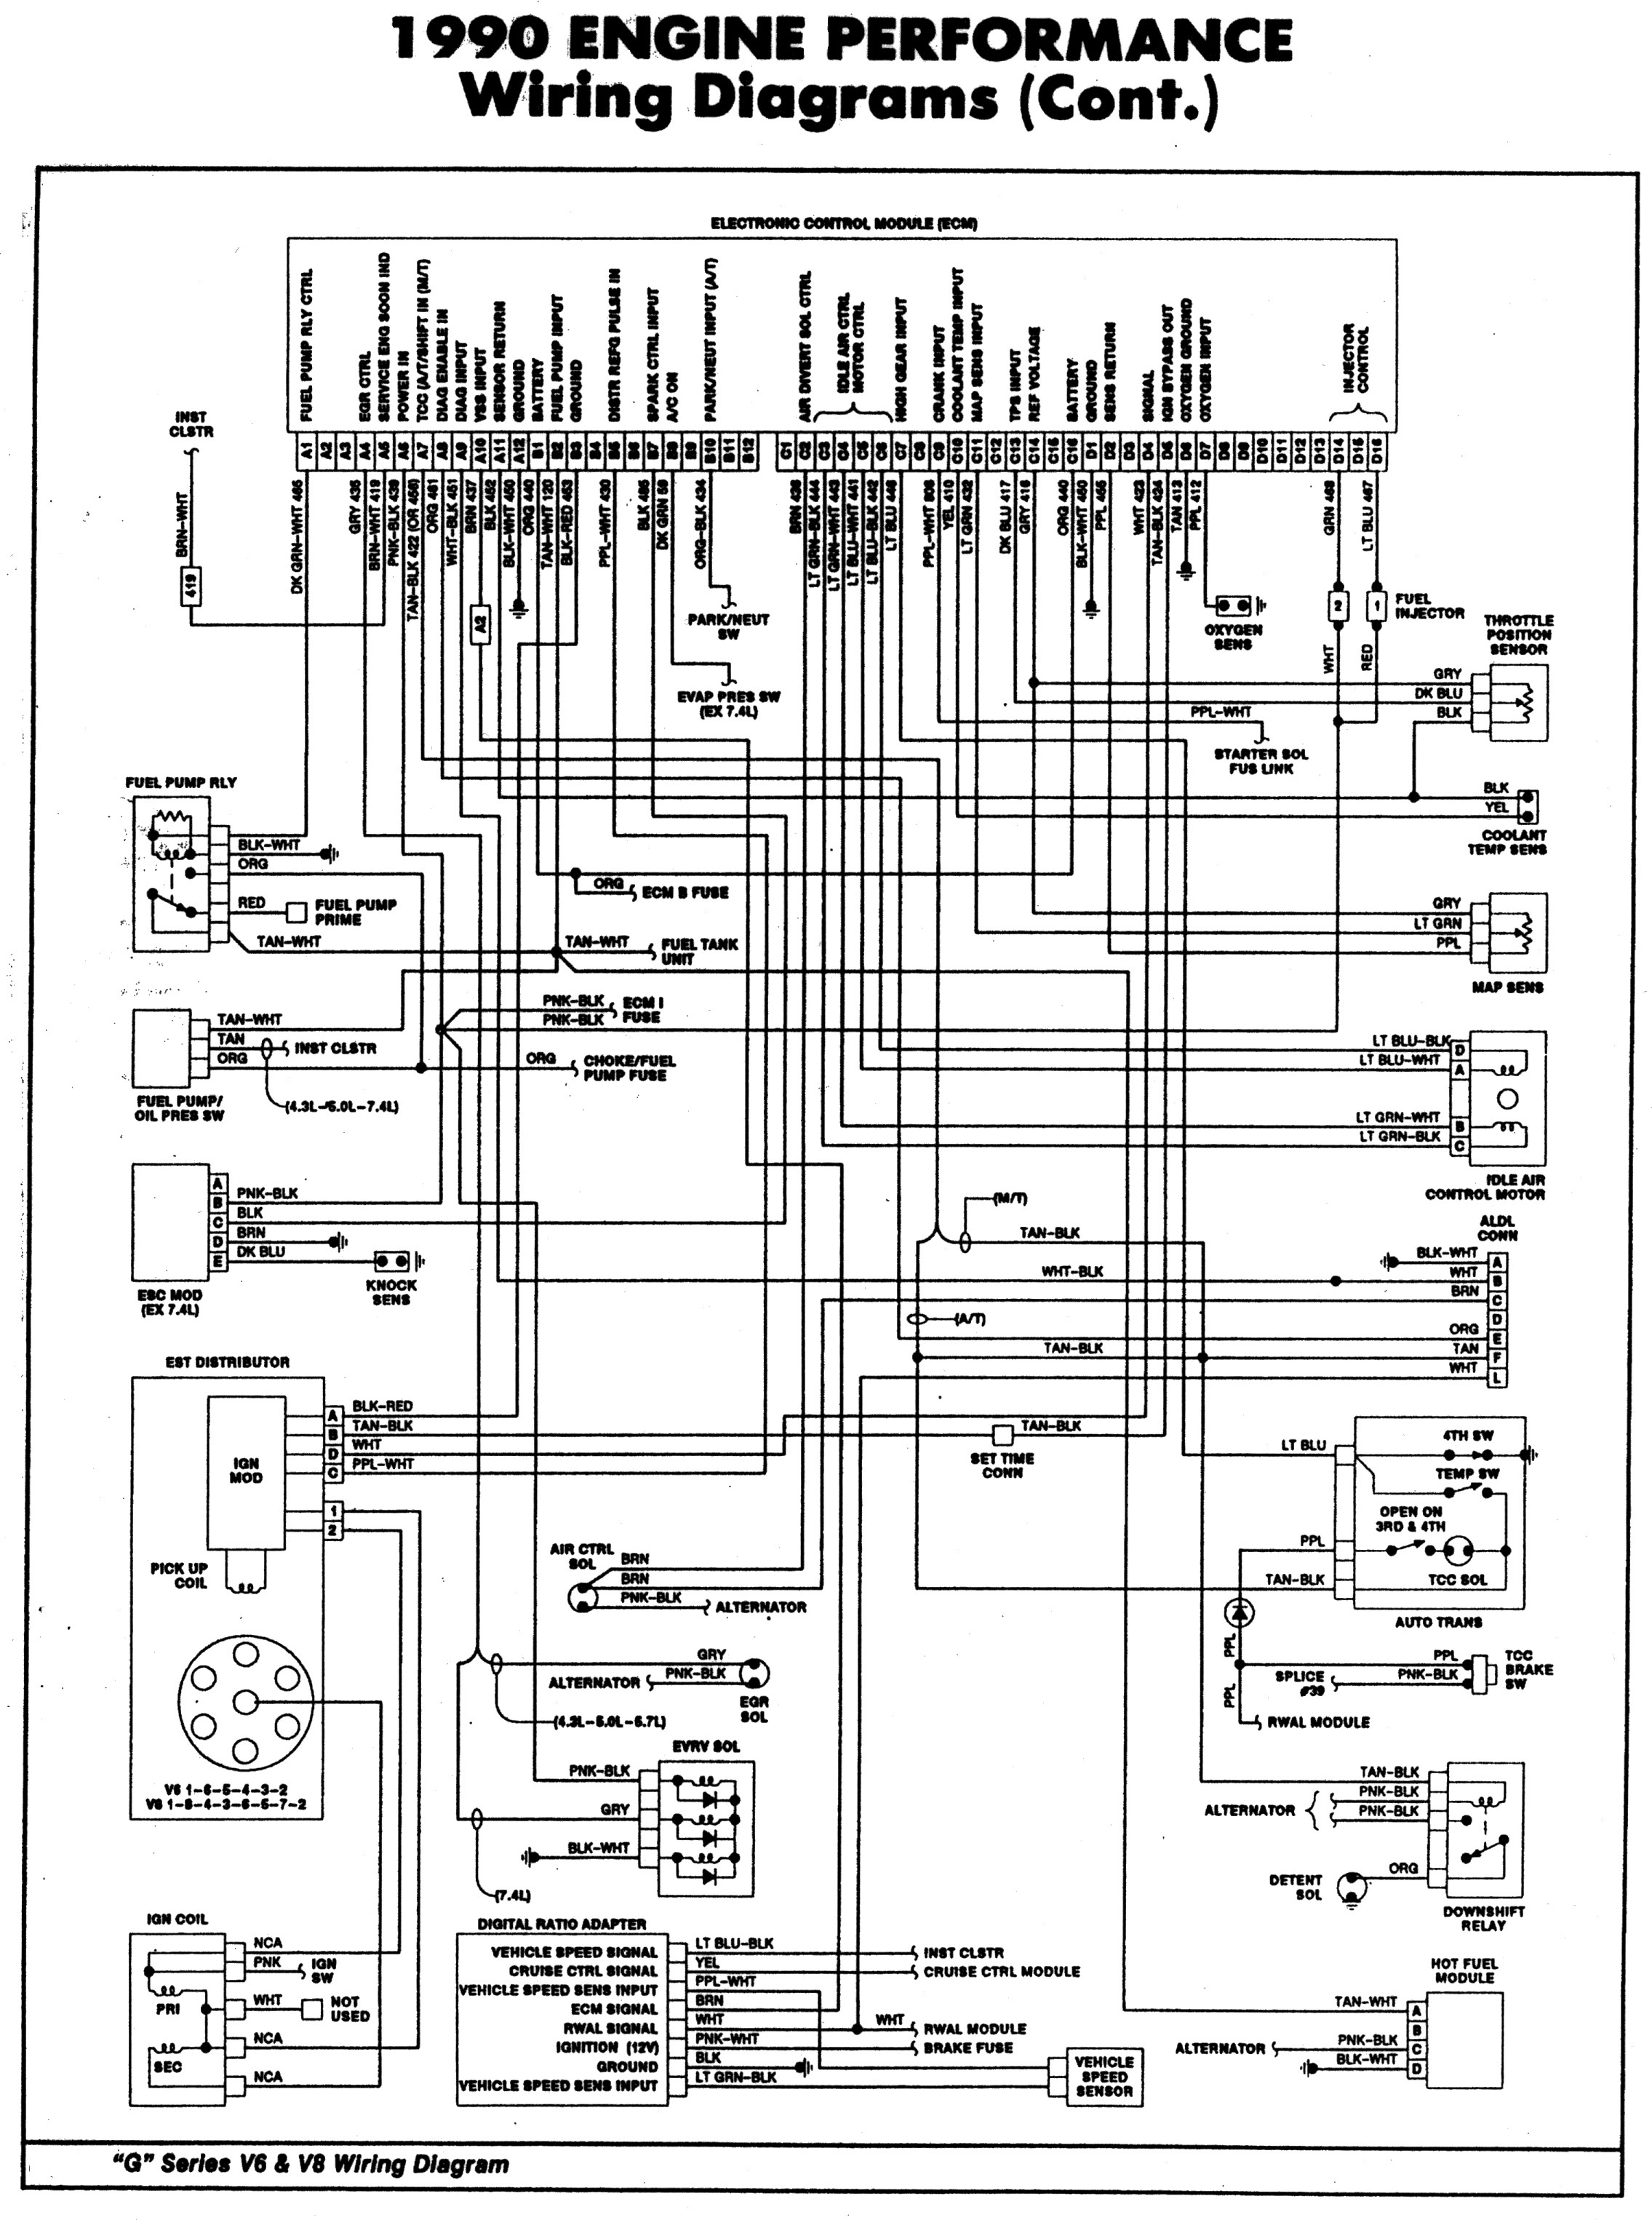 91 chevy lumina wiring diagram wiring diagram data today 1990 chevy lumina engine diagram [ 2271 x 3051 Pixel ]